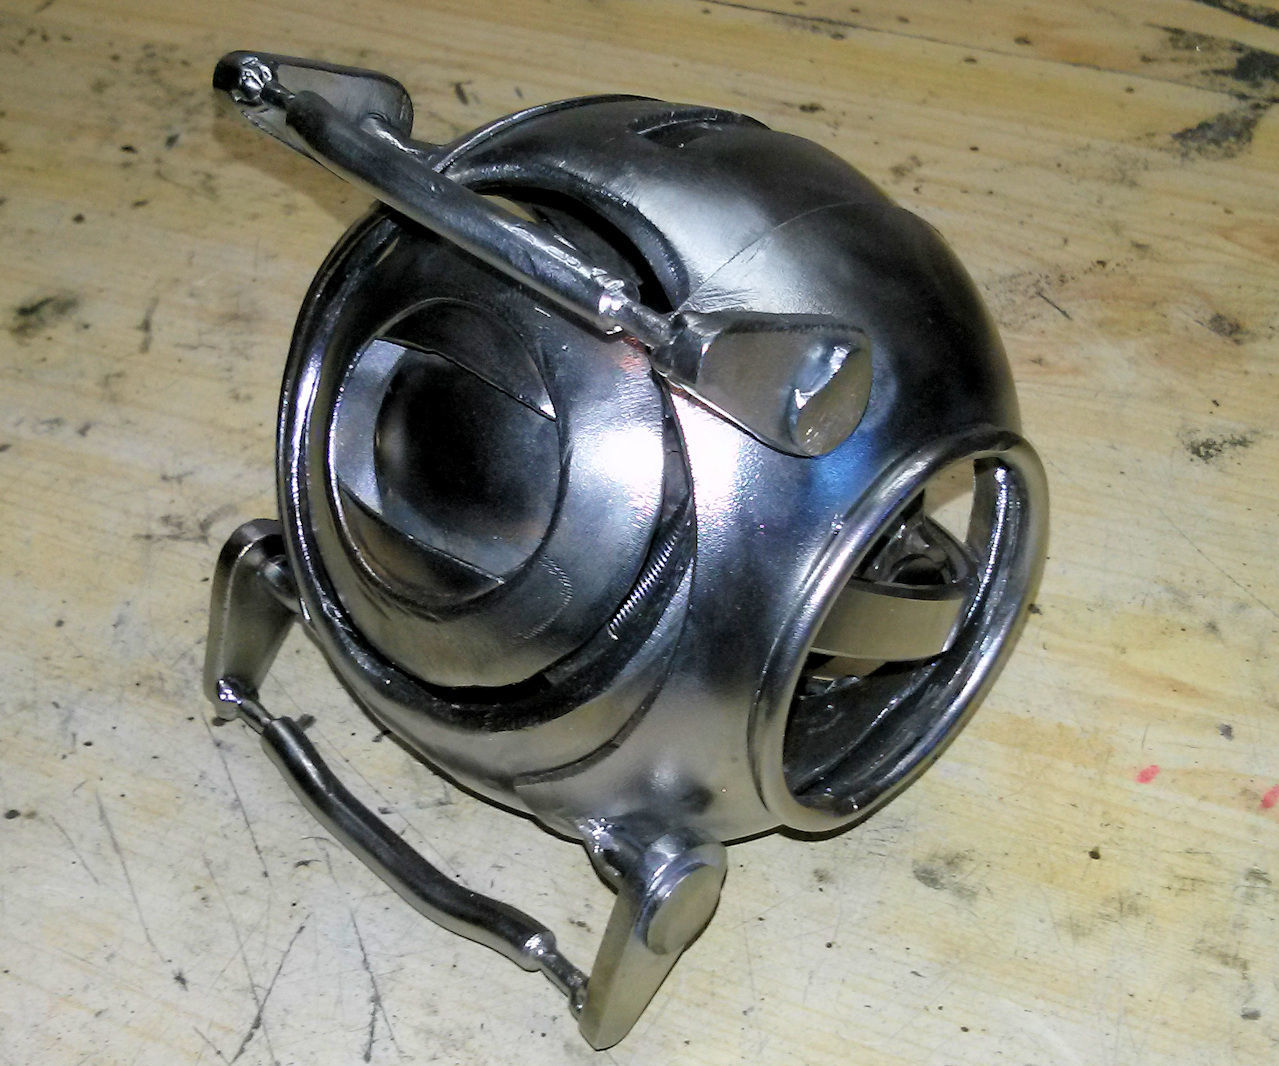 Welded Wheatley from Portal game